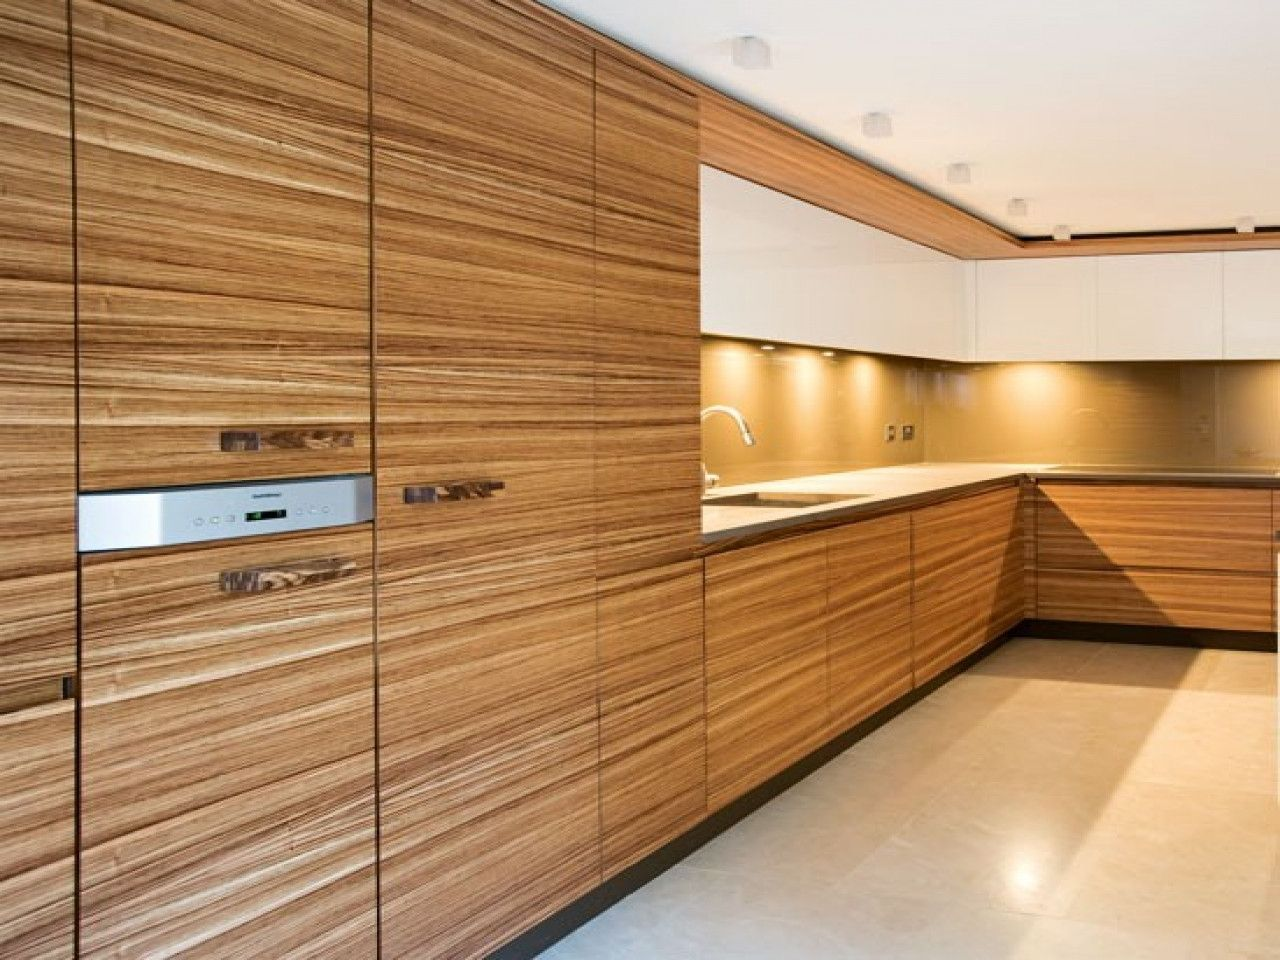 50 Wood Veneer Cabinet Doors Kitchen Cabinets Storage Ideas Check More At Http Www Planetg Laminate Kitchen Kitchen Cabinets And Countertops Cabinet Doors